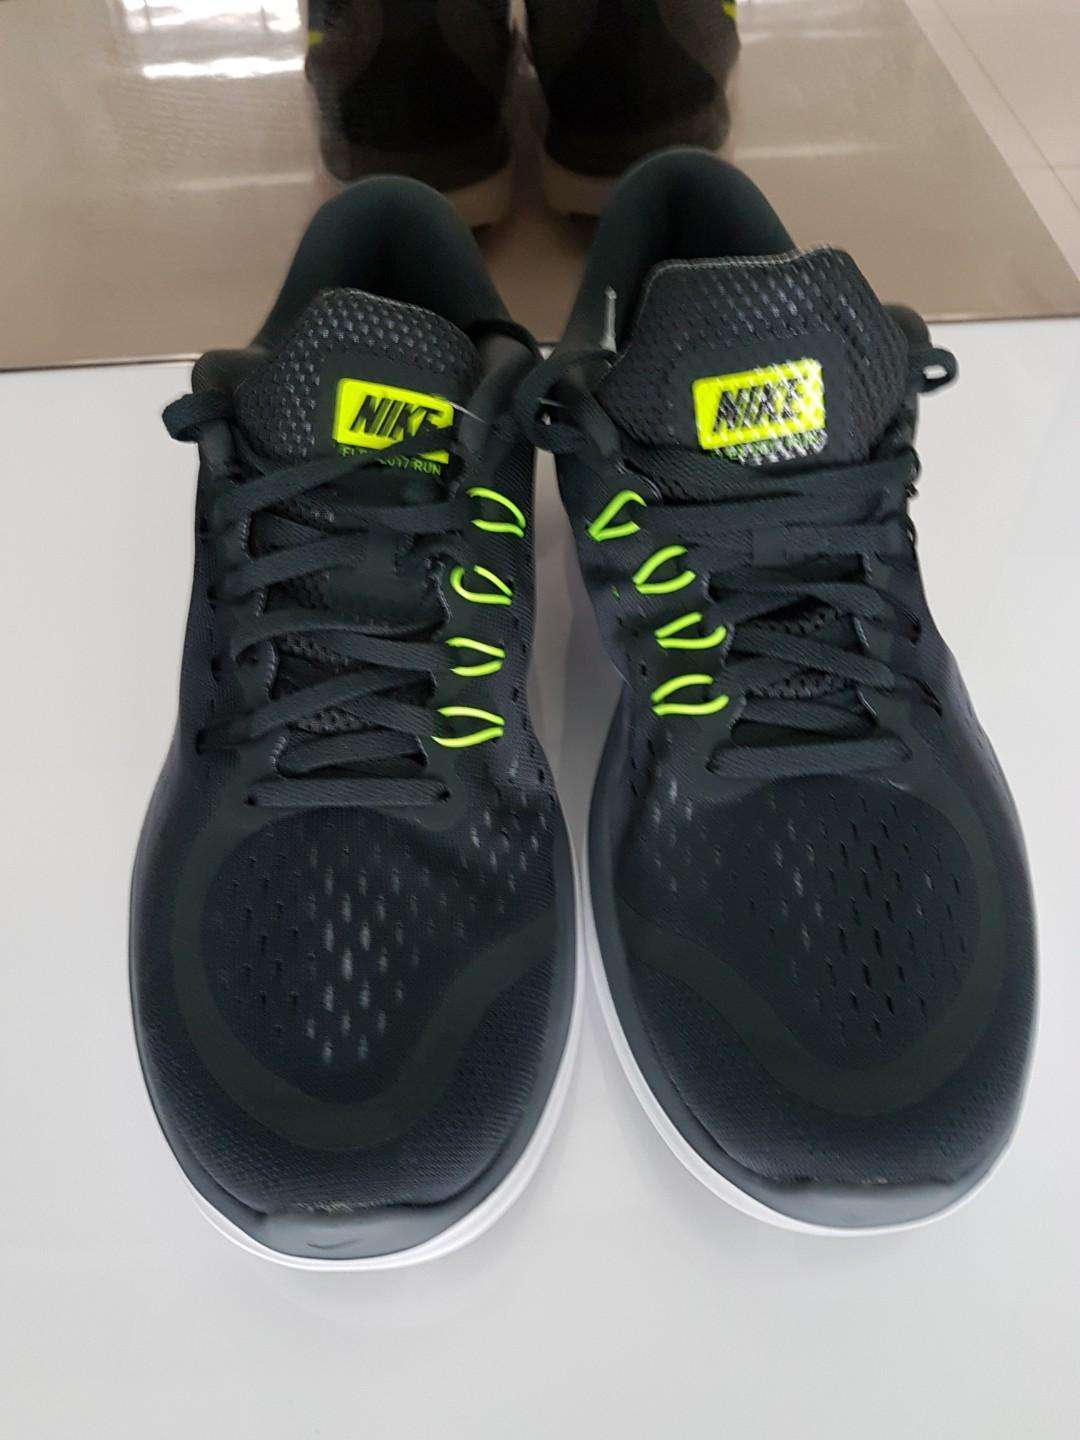 New Nike Shoes@ RARE price!, Sports